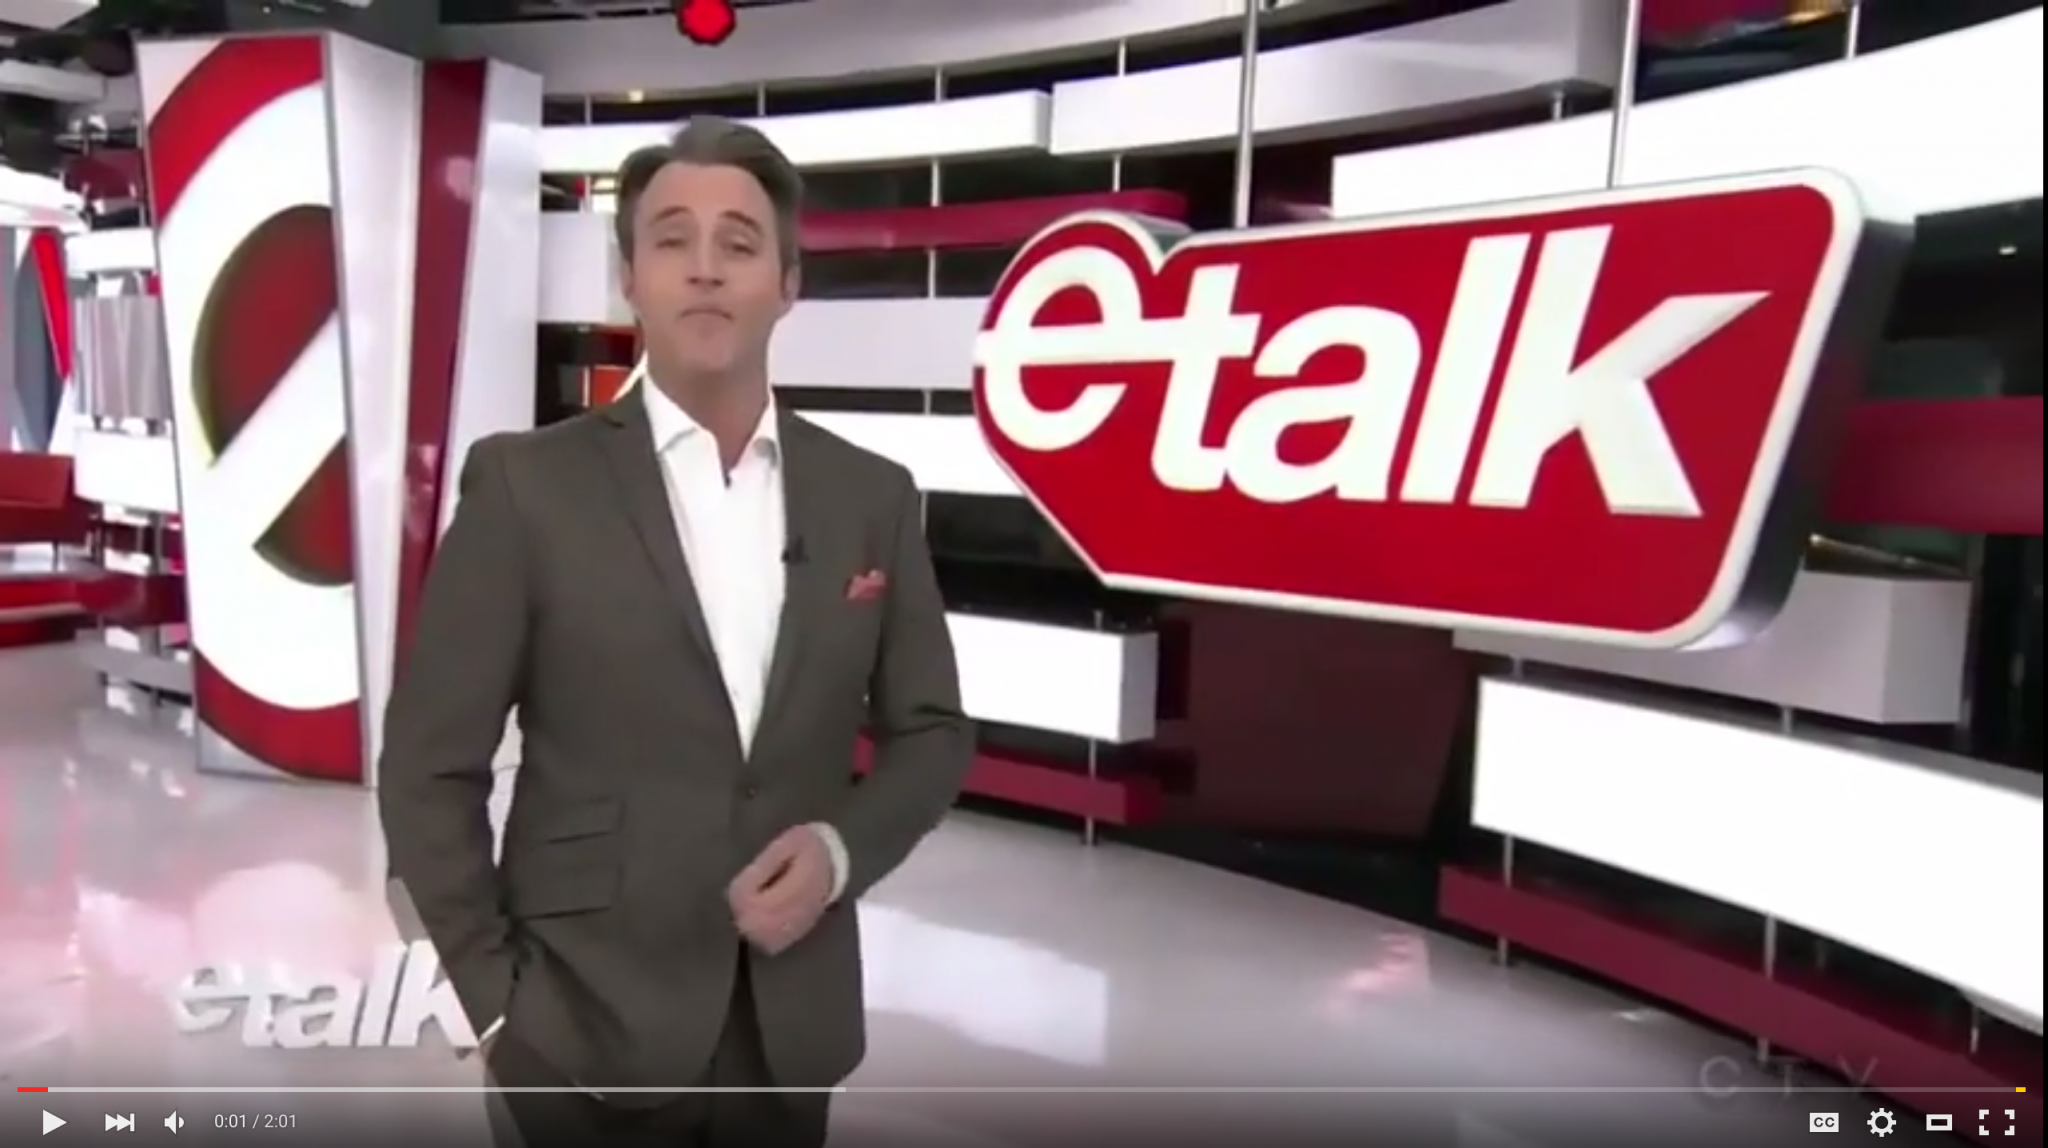 Ben Mulroney Demos BMC on e-Talk